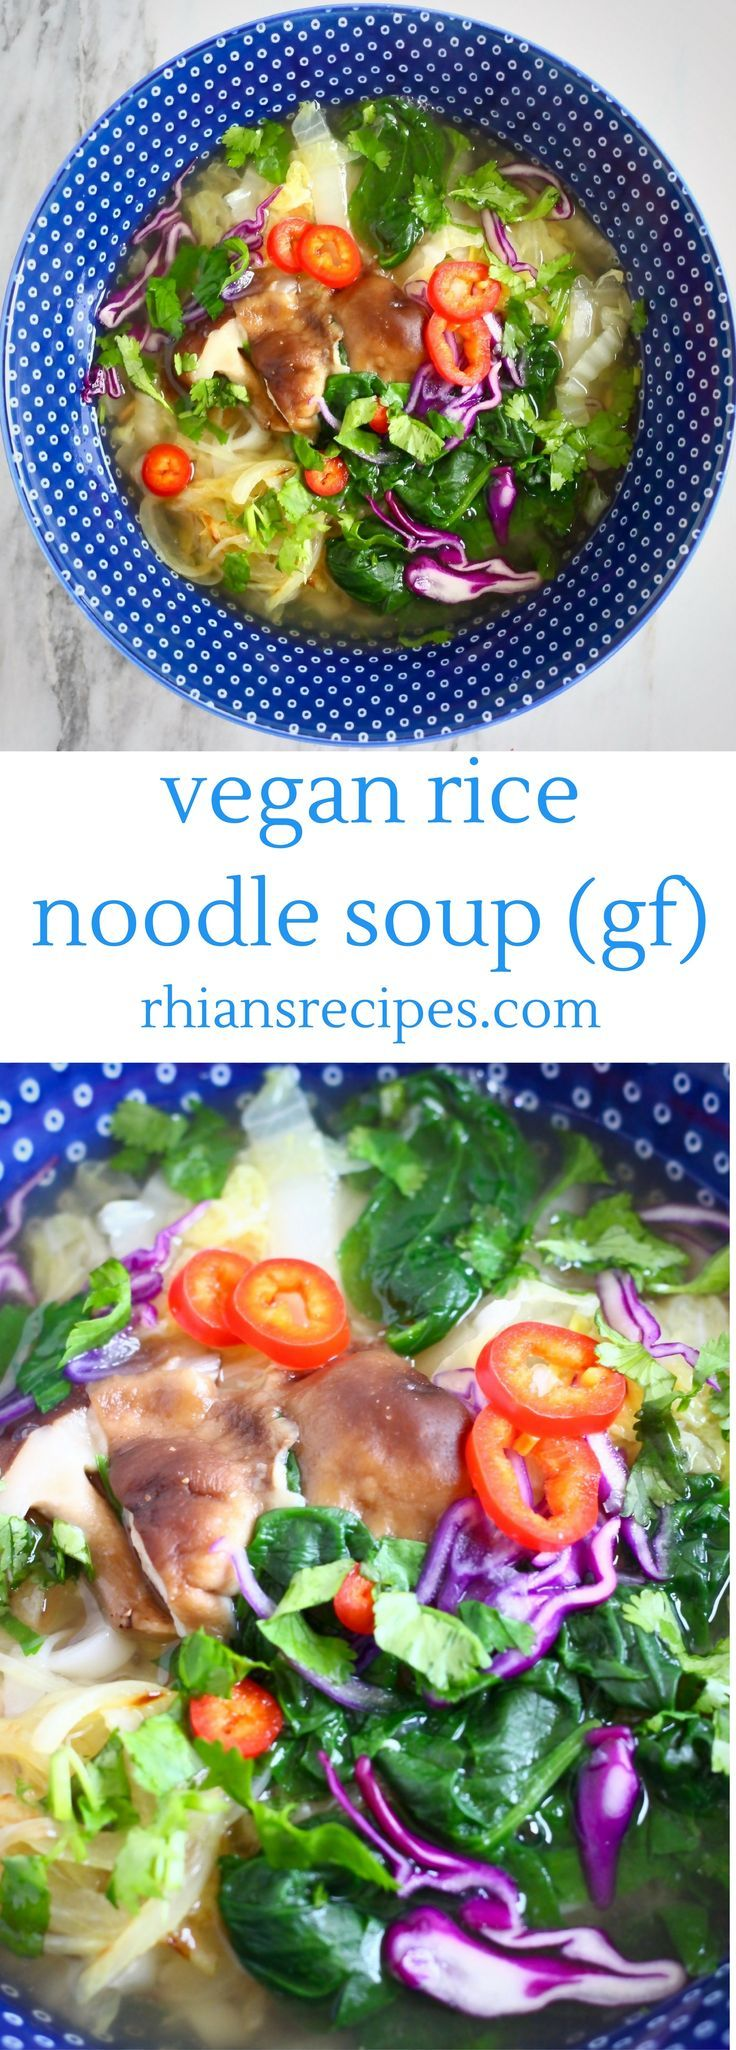 This Vegan Rice Noodle Soup is super quick and easy to make as you can cook it all together in one pot. Veggie-packed and gluten-free.